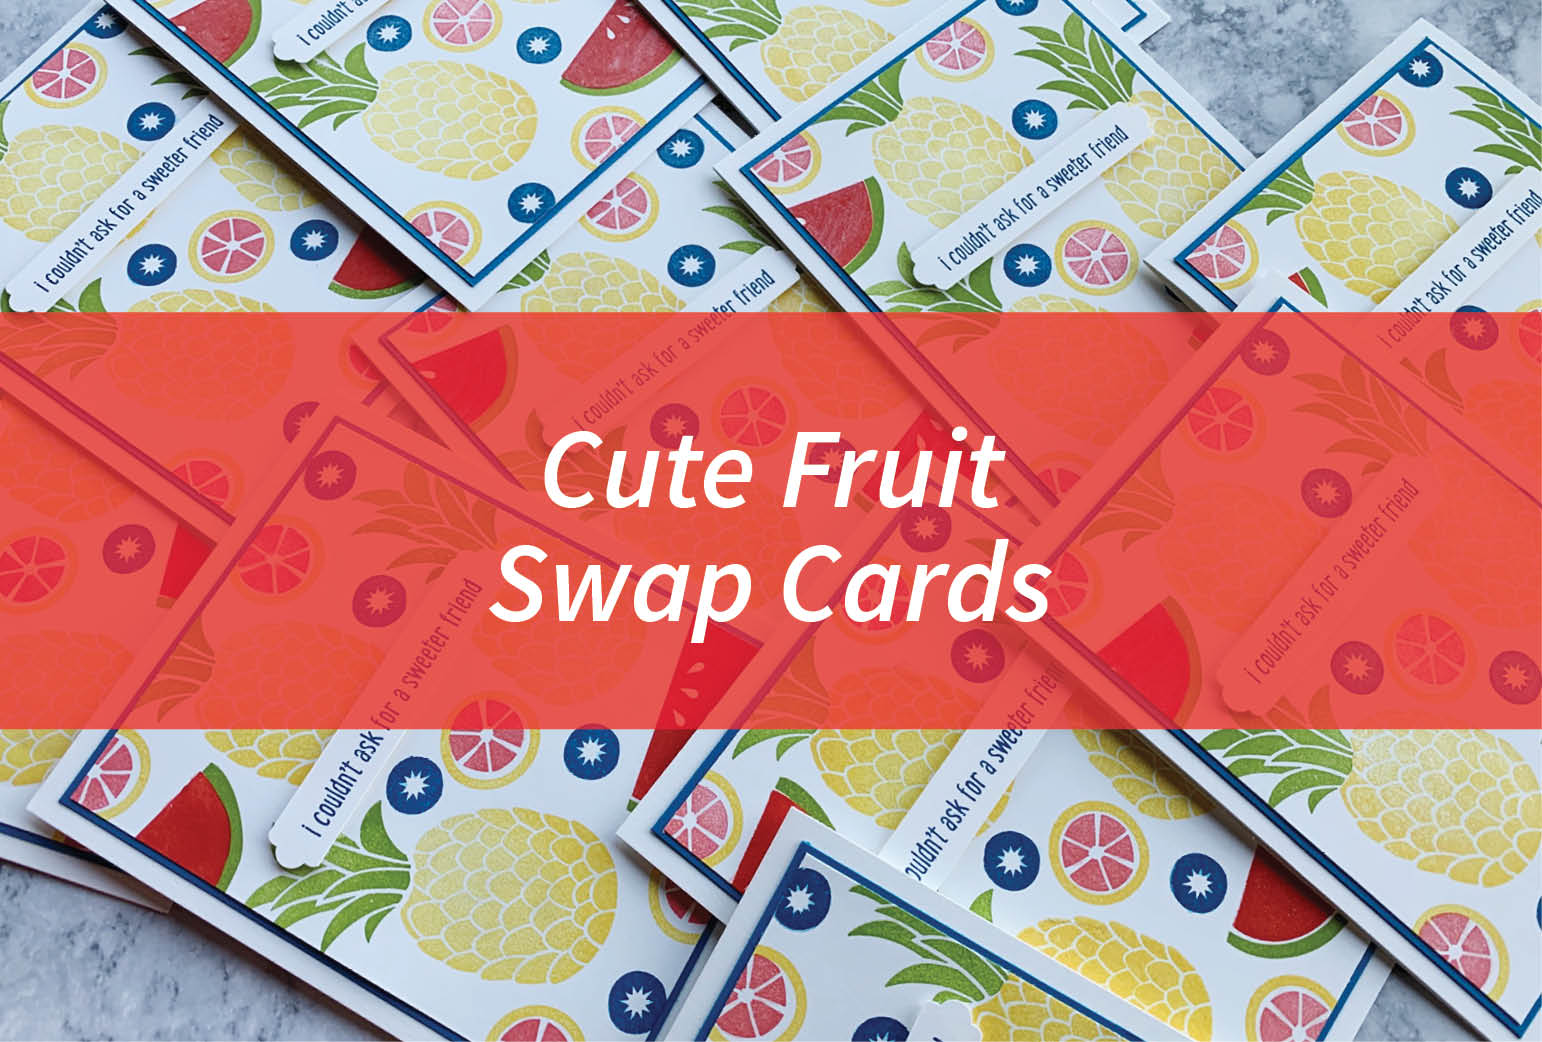 Cute Fruit Swap Cards